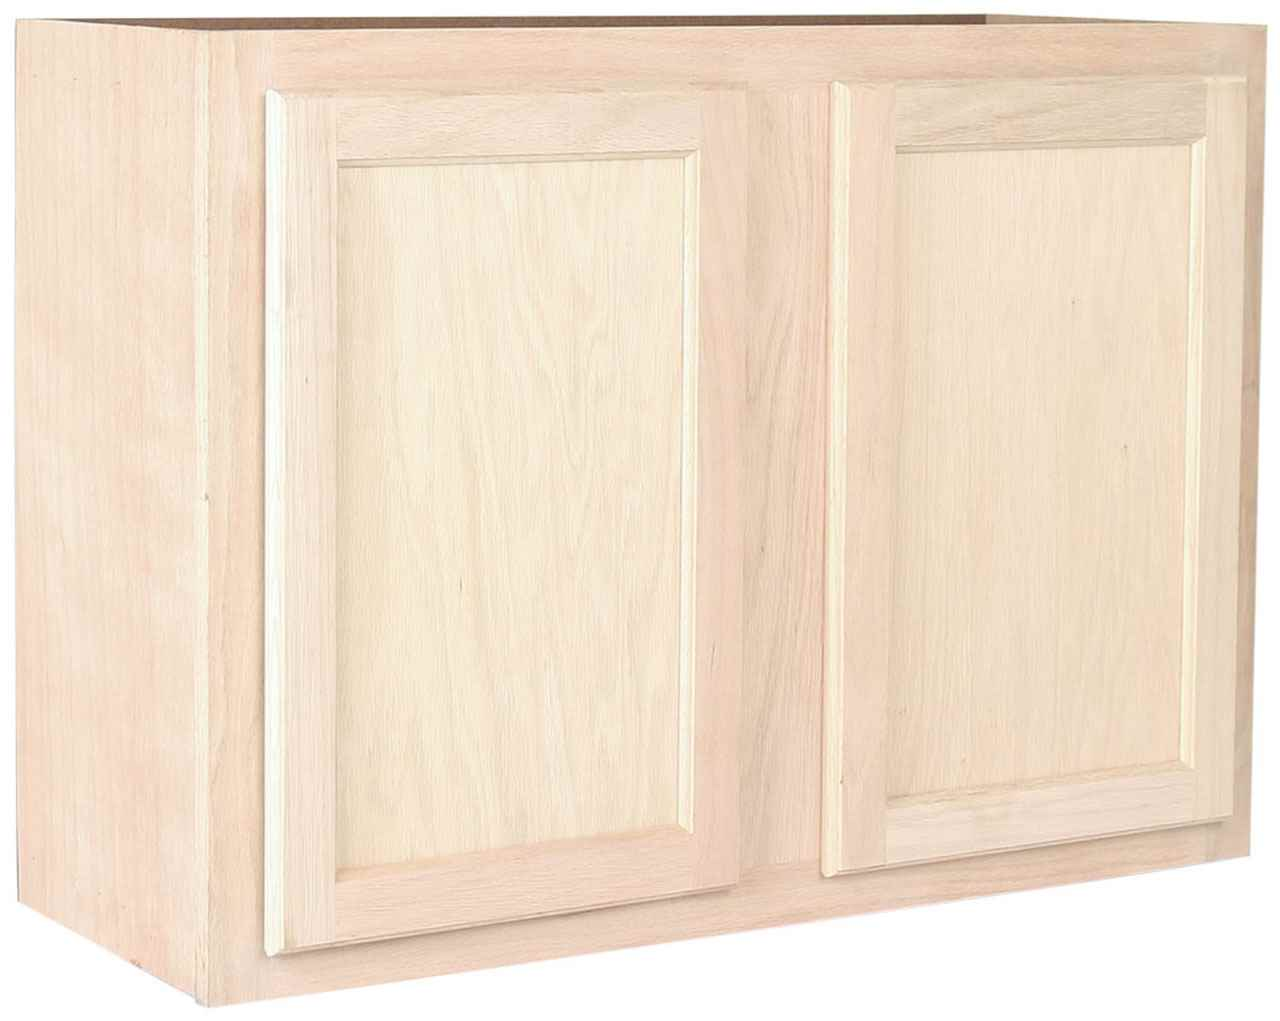 Saco Unfinished Wall Cabinet 36 Inch X 24 Inch Saco Collection